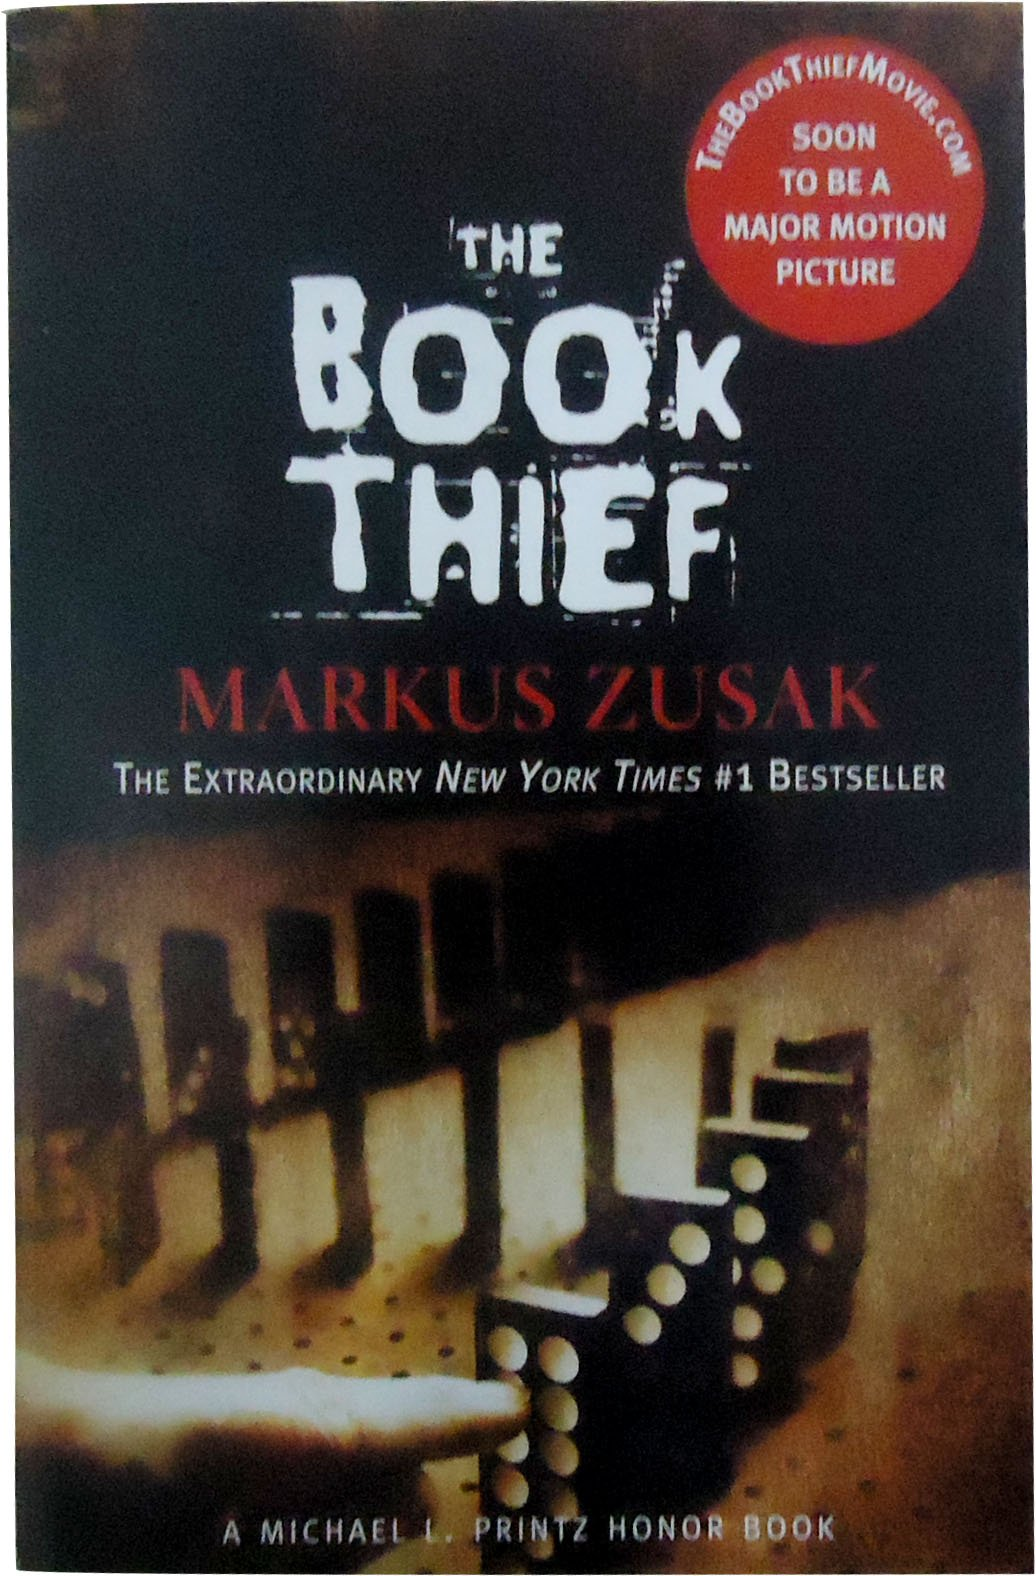 the book thief markus zusak 9780375842207 com books